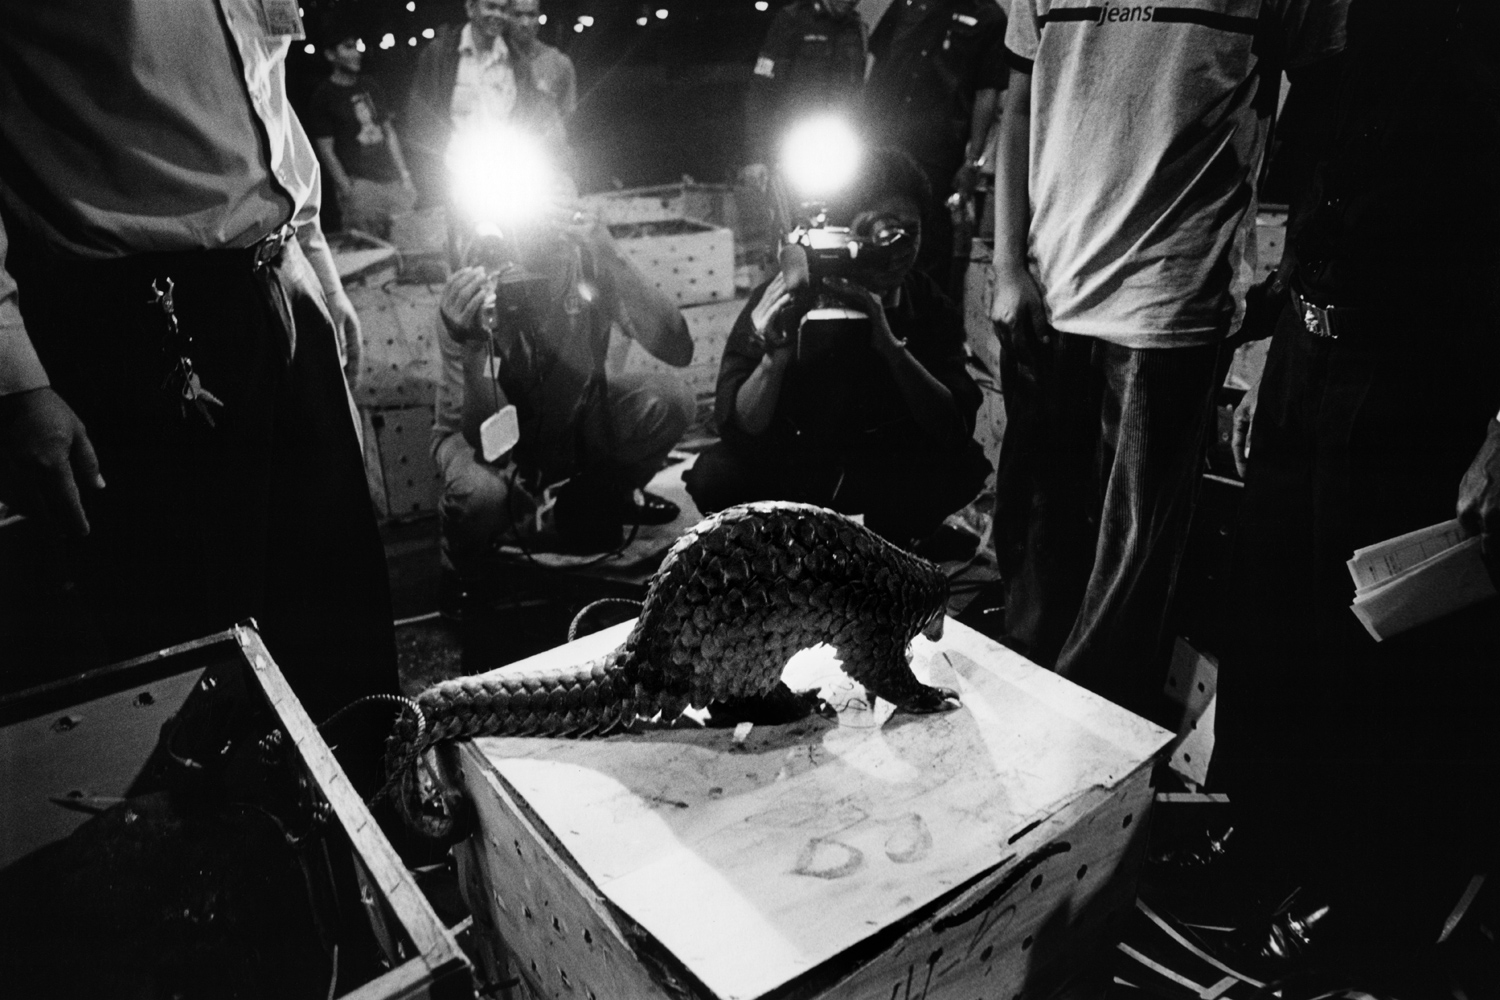 Bangkok, Thailand                                                                                             Journalists are invited to photograph a shipment of pangolins intercepted at Bangkok's international airport as part of a crackdown on trafficking in wild animals. Pangolins are considered a delicacy in parts of Asia and prized for their use in traditional medicine and as an aphrodisiac.